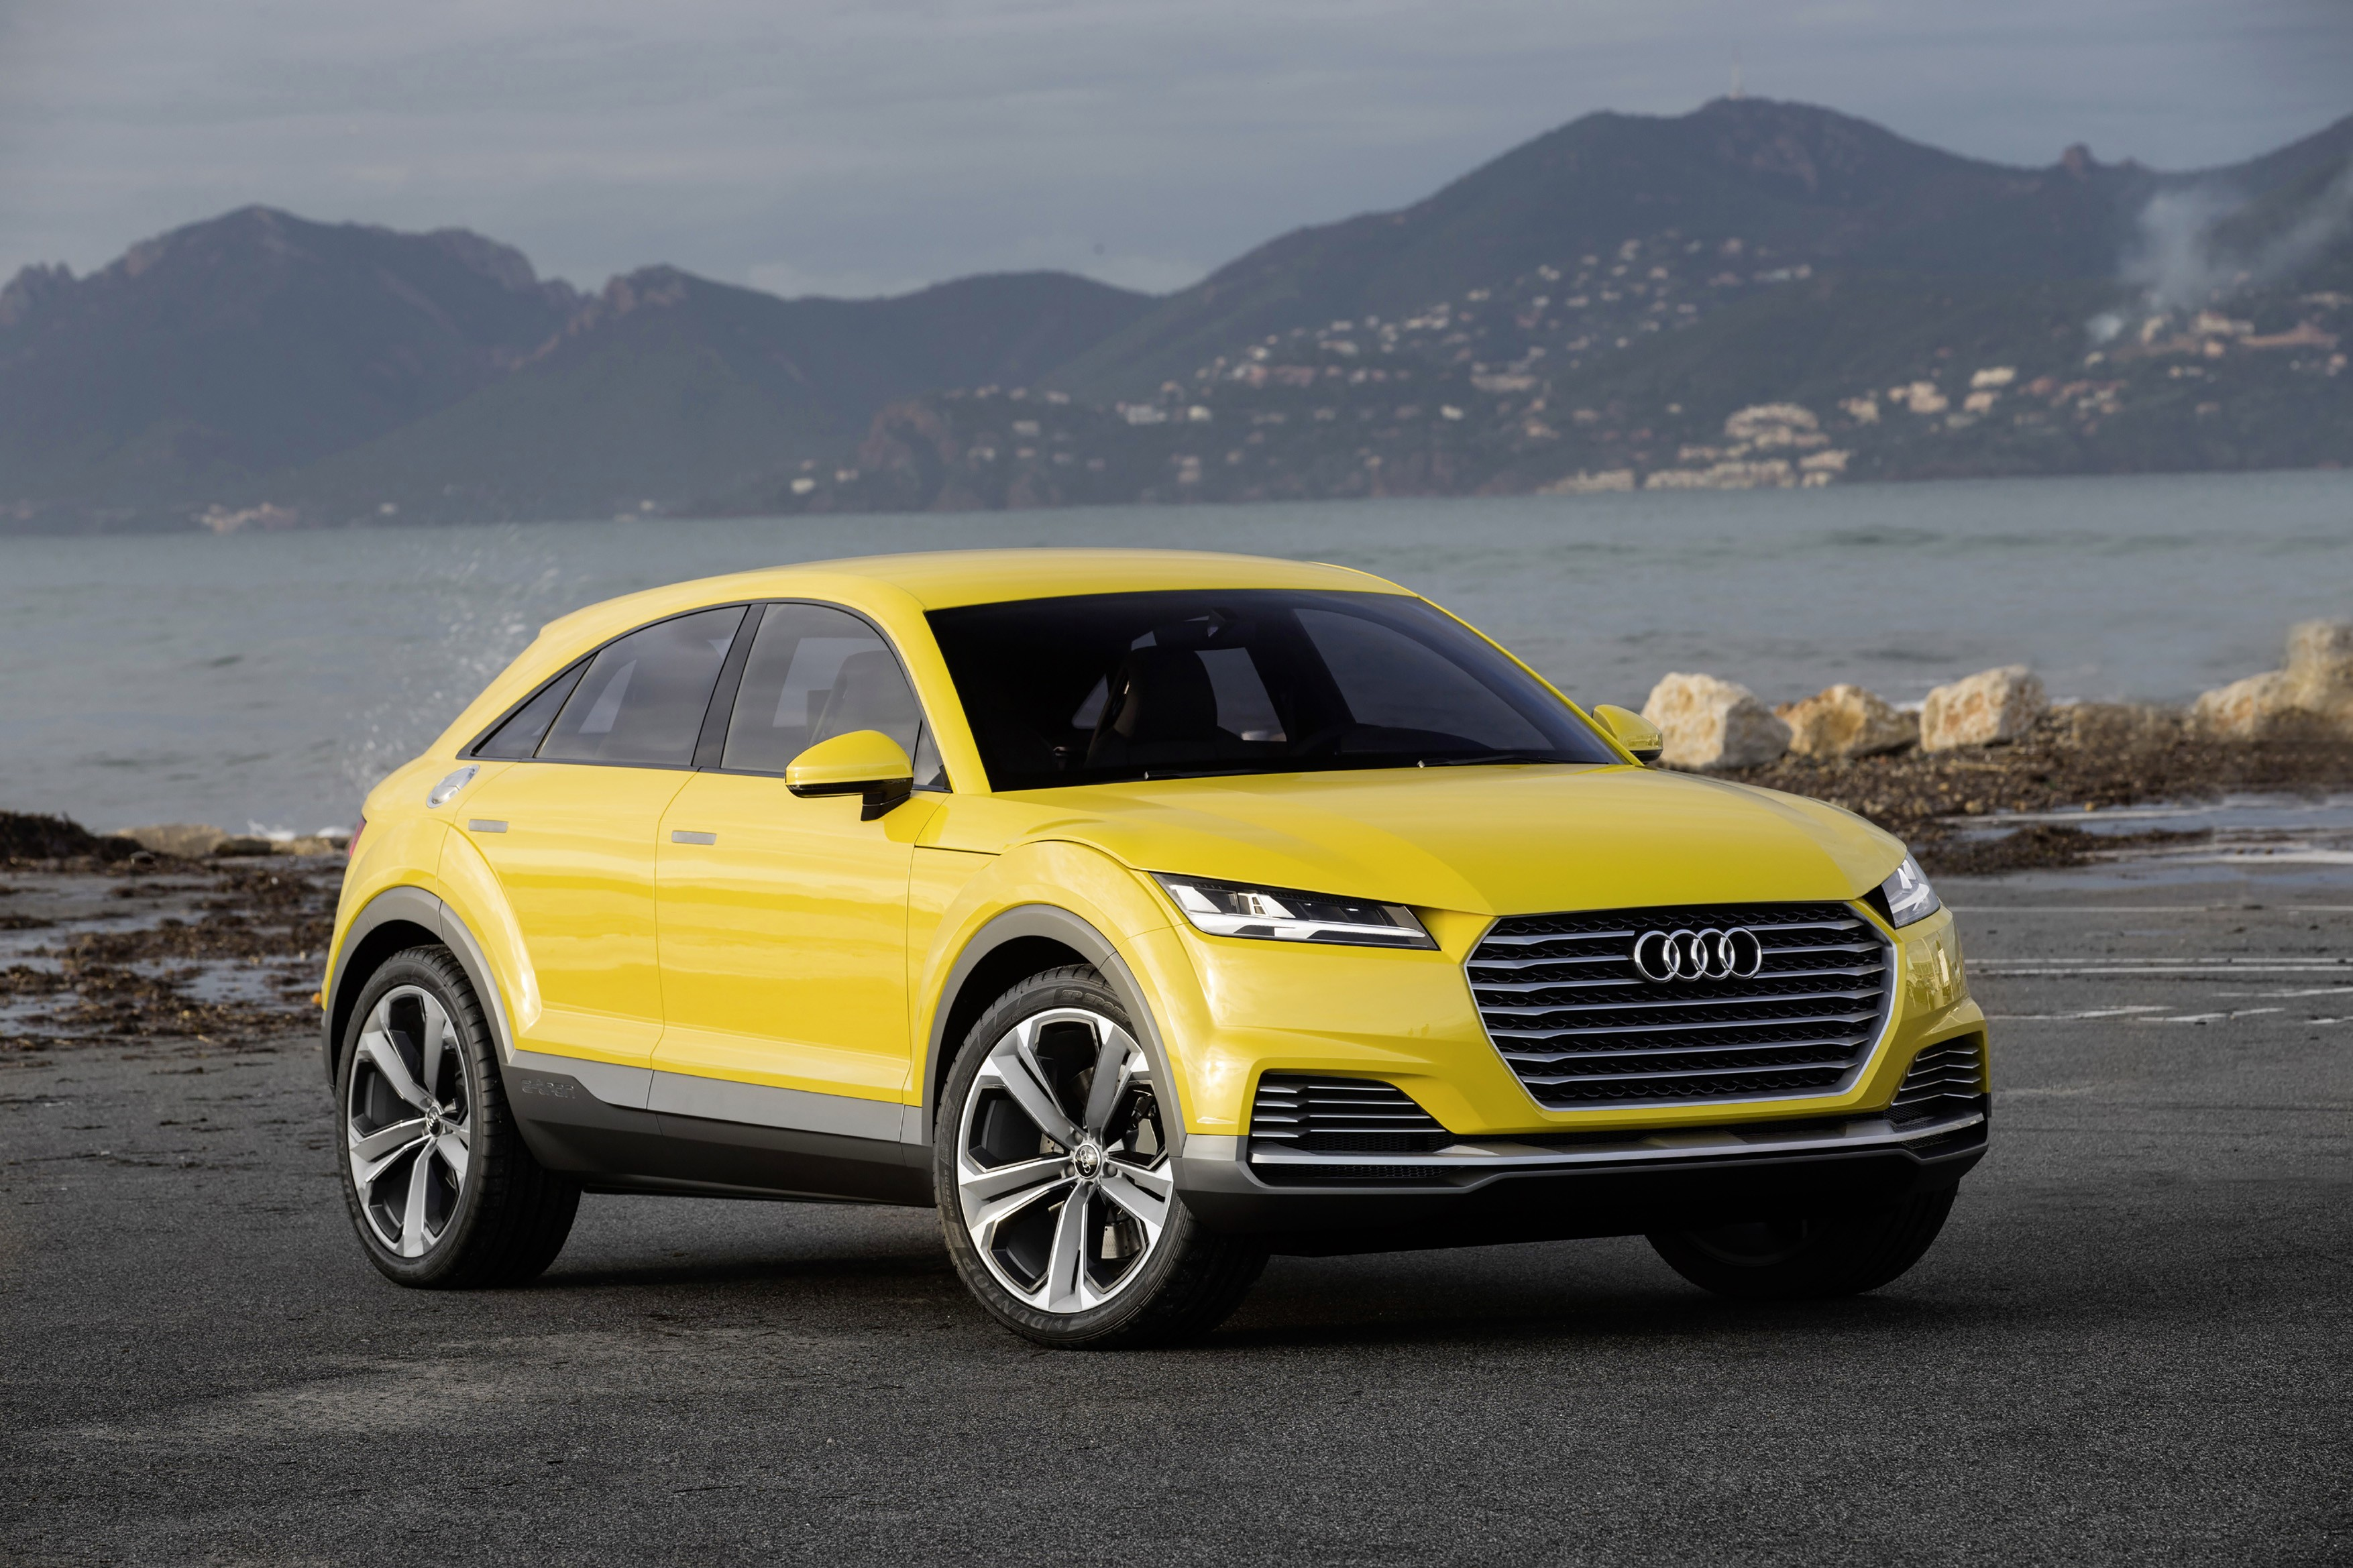 news new weeks will suv in every once introduce three a render audi model models